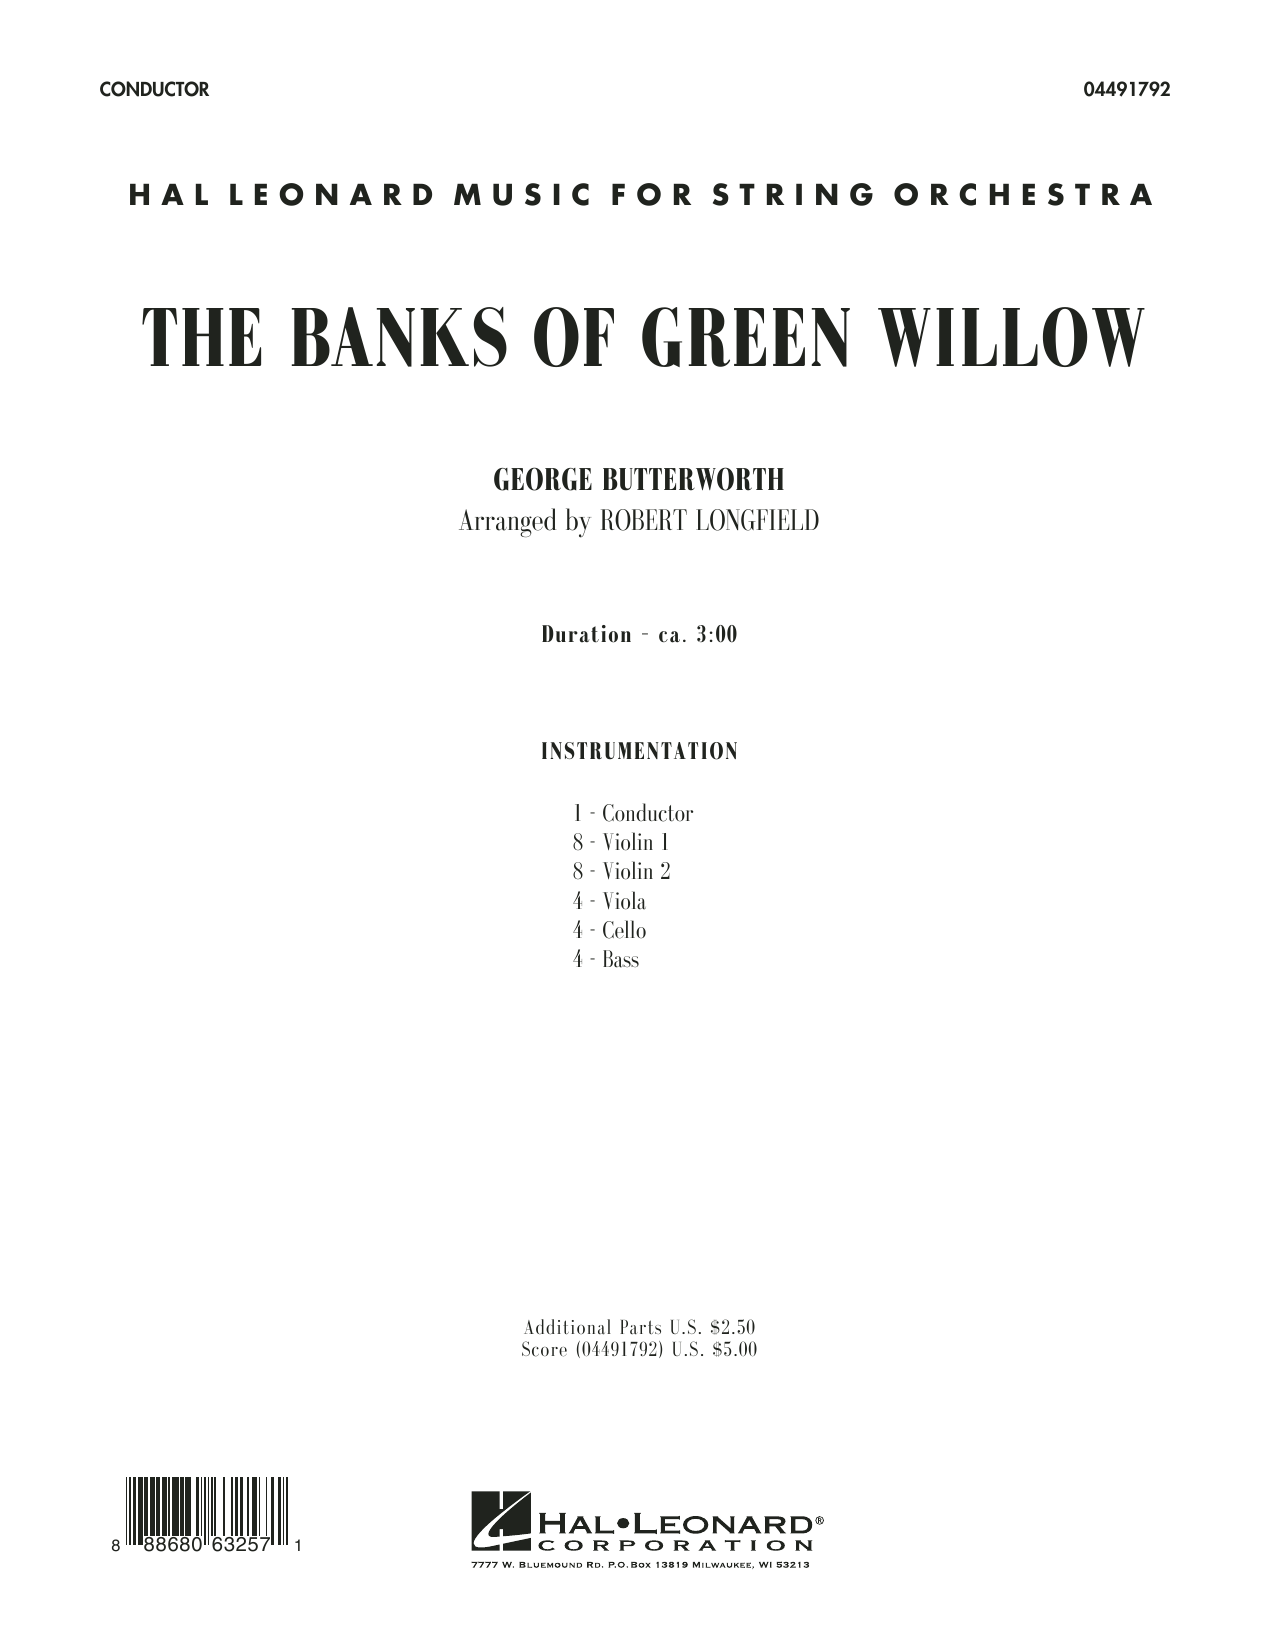 Robert Longfield The Banks of Green Willow - Conductor Score (Full Score) sheet music preview music notes and score for Concert Band including 16 page(s)